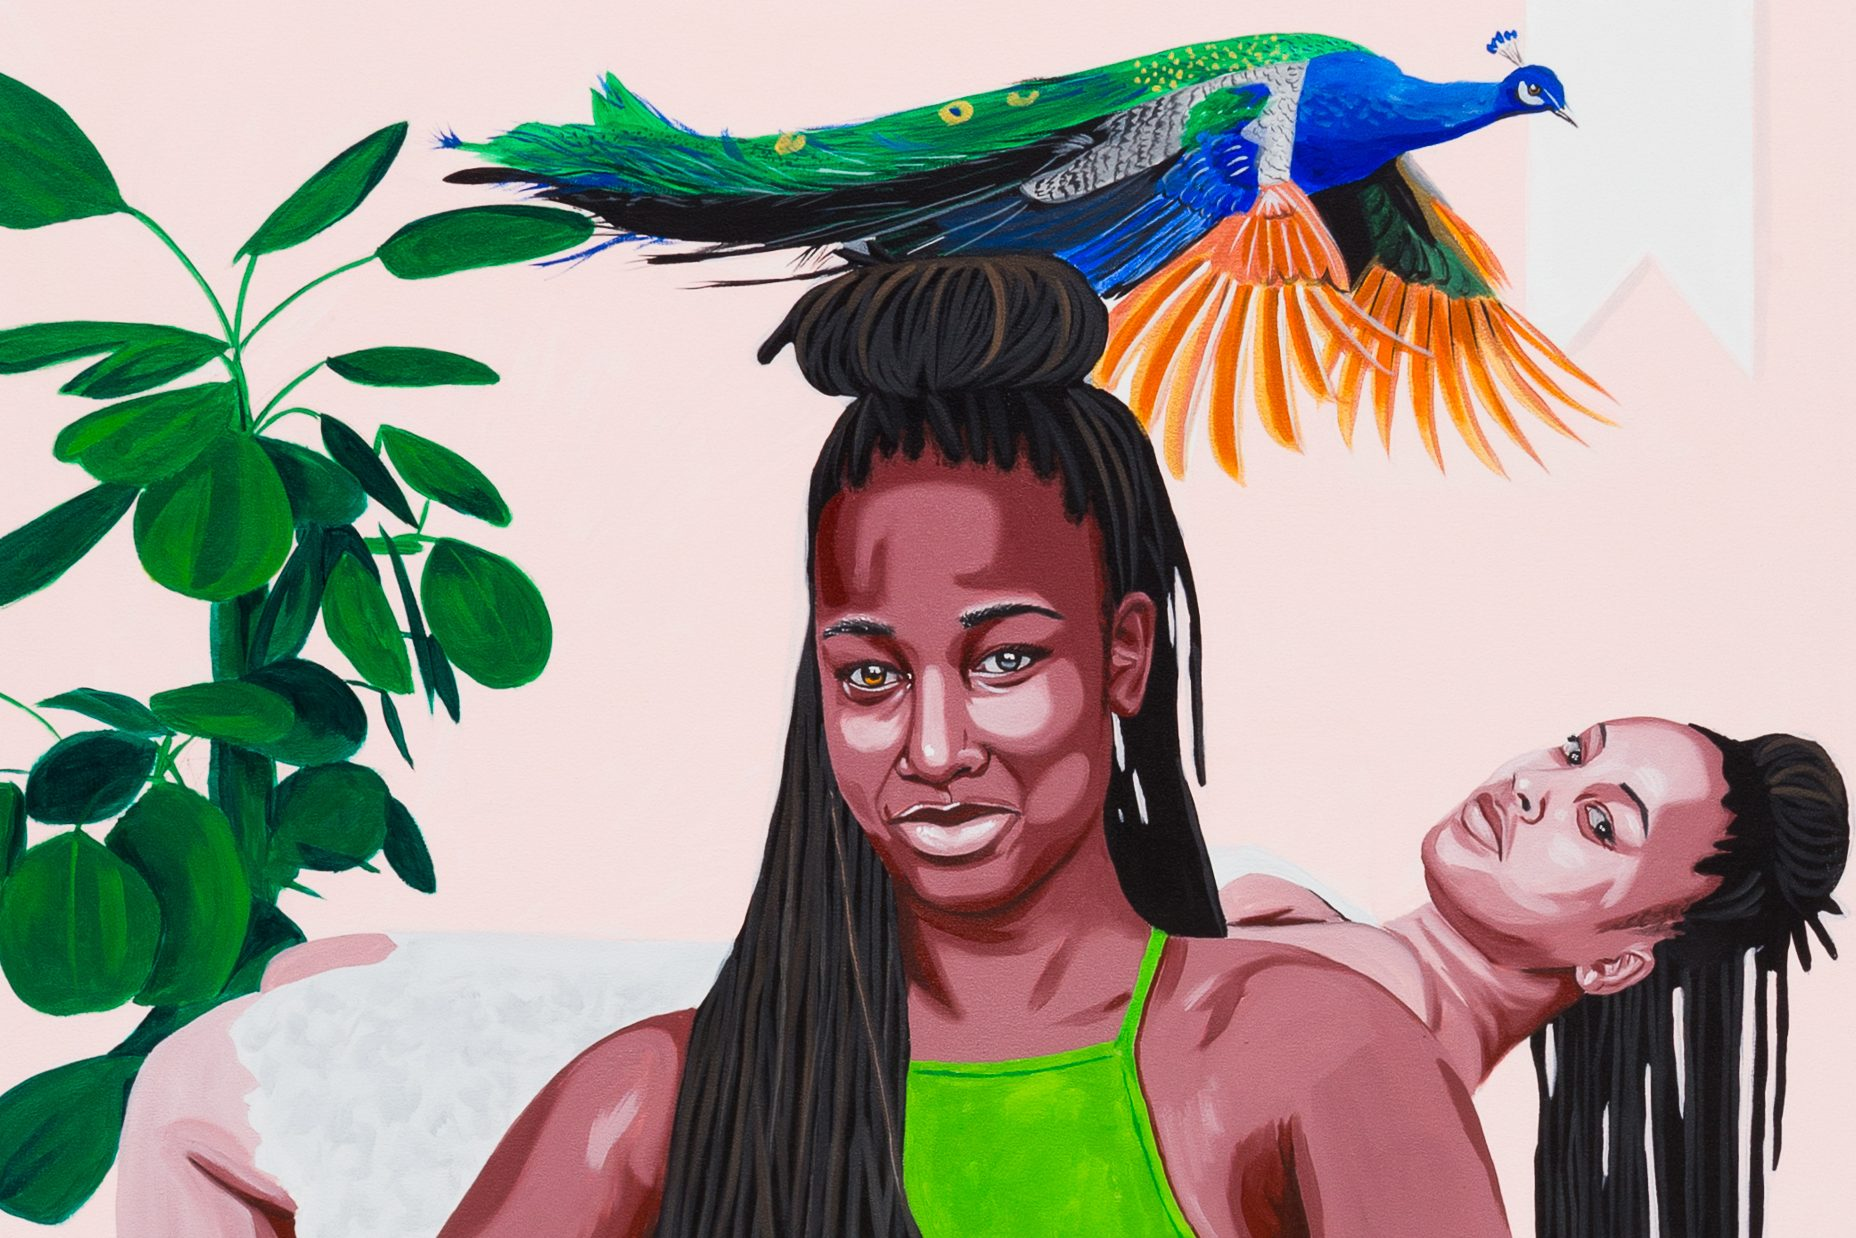 A painting with a smiling Black woman in the center foreground, her long black hair is styled in dreads with half down and half up in a large bun on top of her head. Behind her, another woman with the same hair style bends backwards, as a peacock flies overhead. There is also a large, round leafed plant on the left side of the frame.